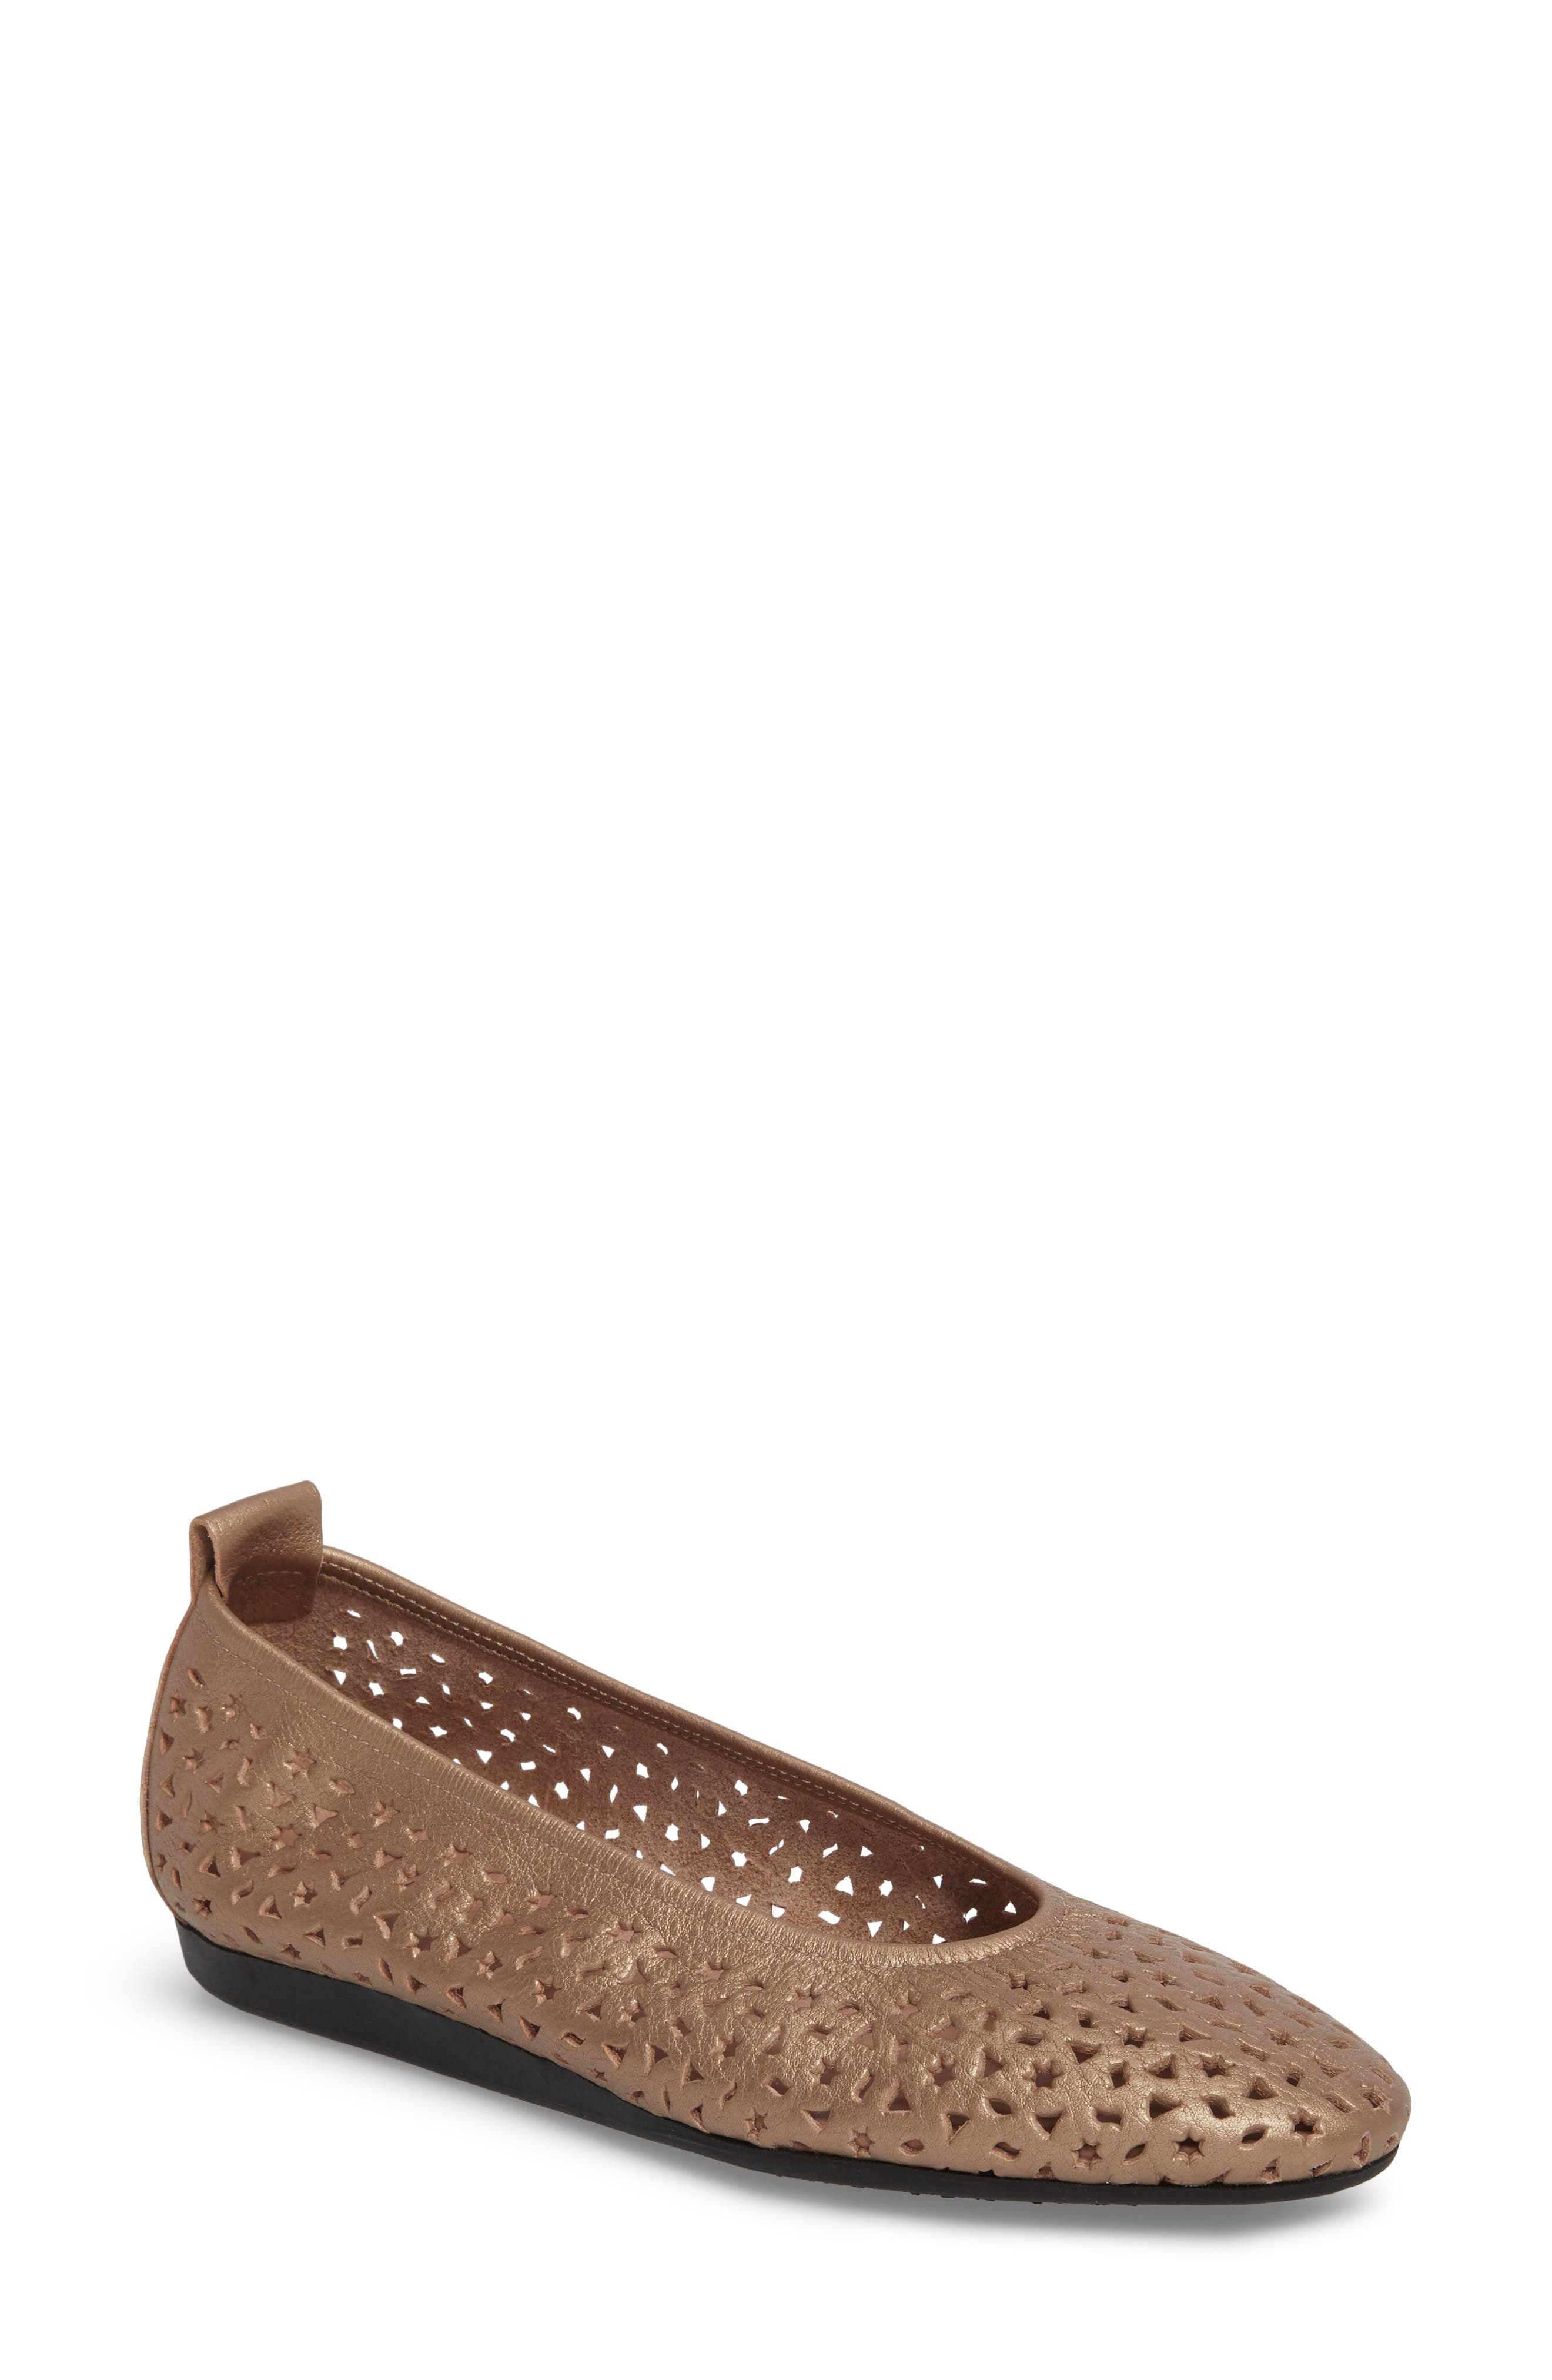 'Lilly' Flat,                             Main thumbnail 1, color,                             ANTICO/ BLUSH LEATHER